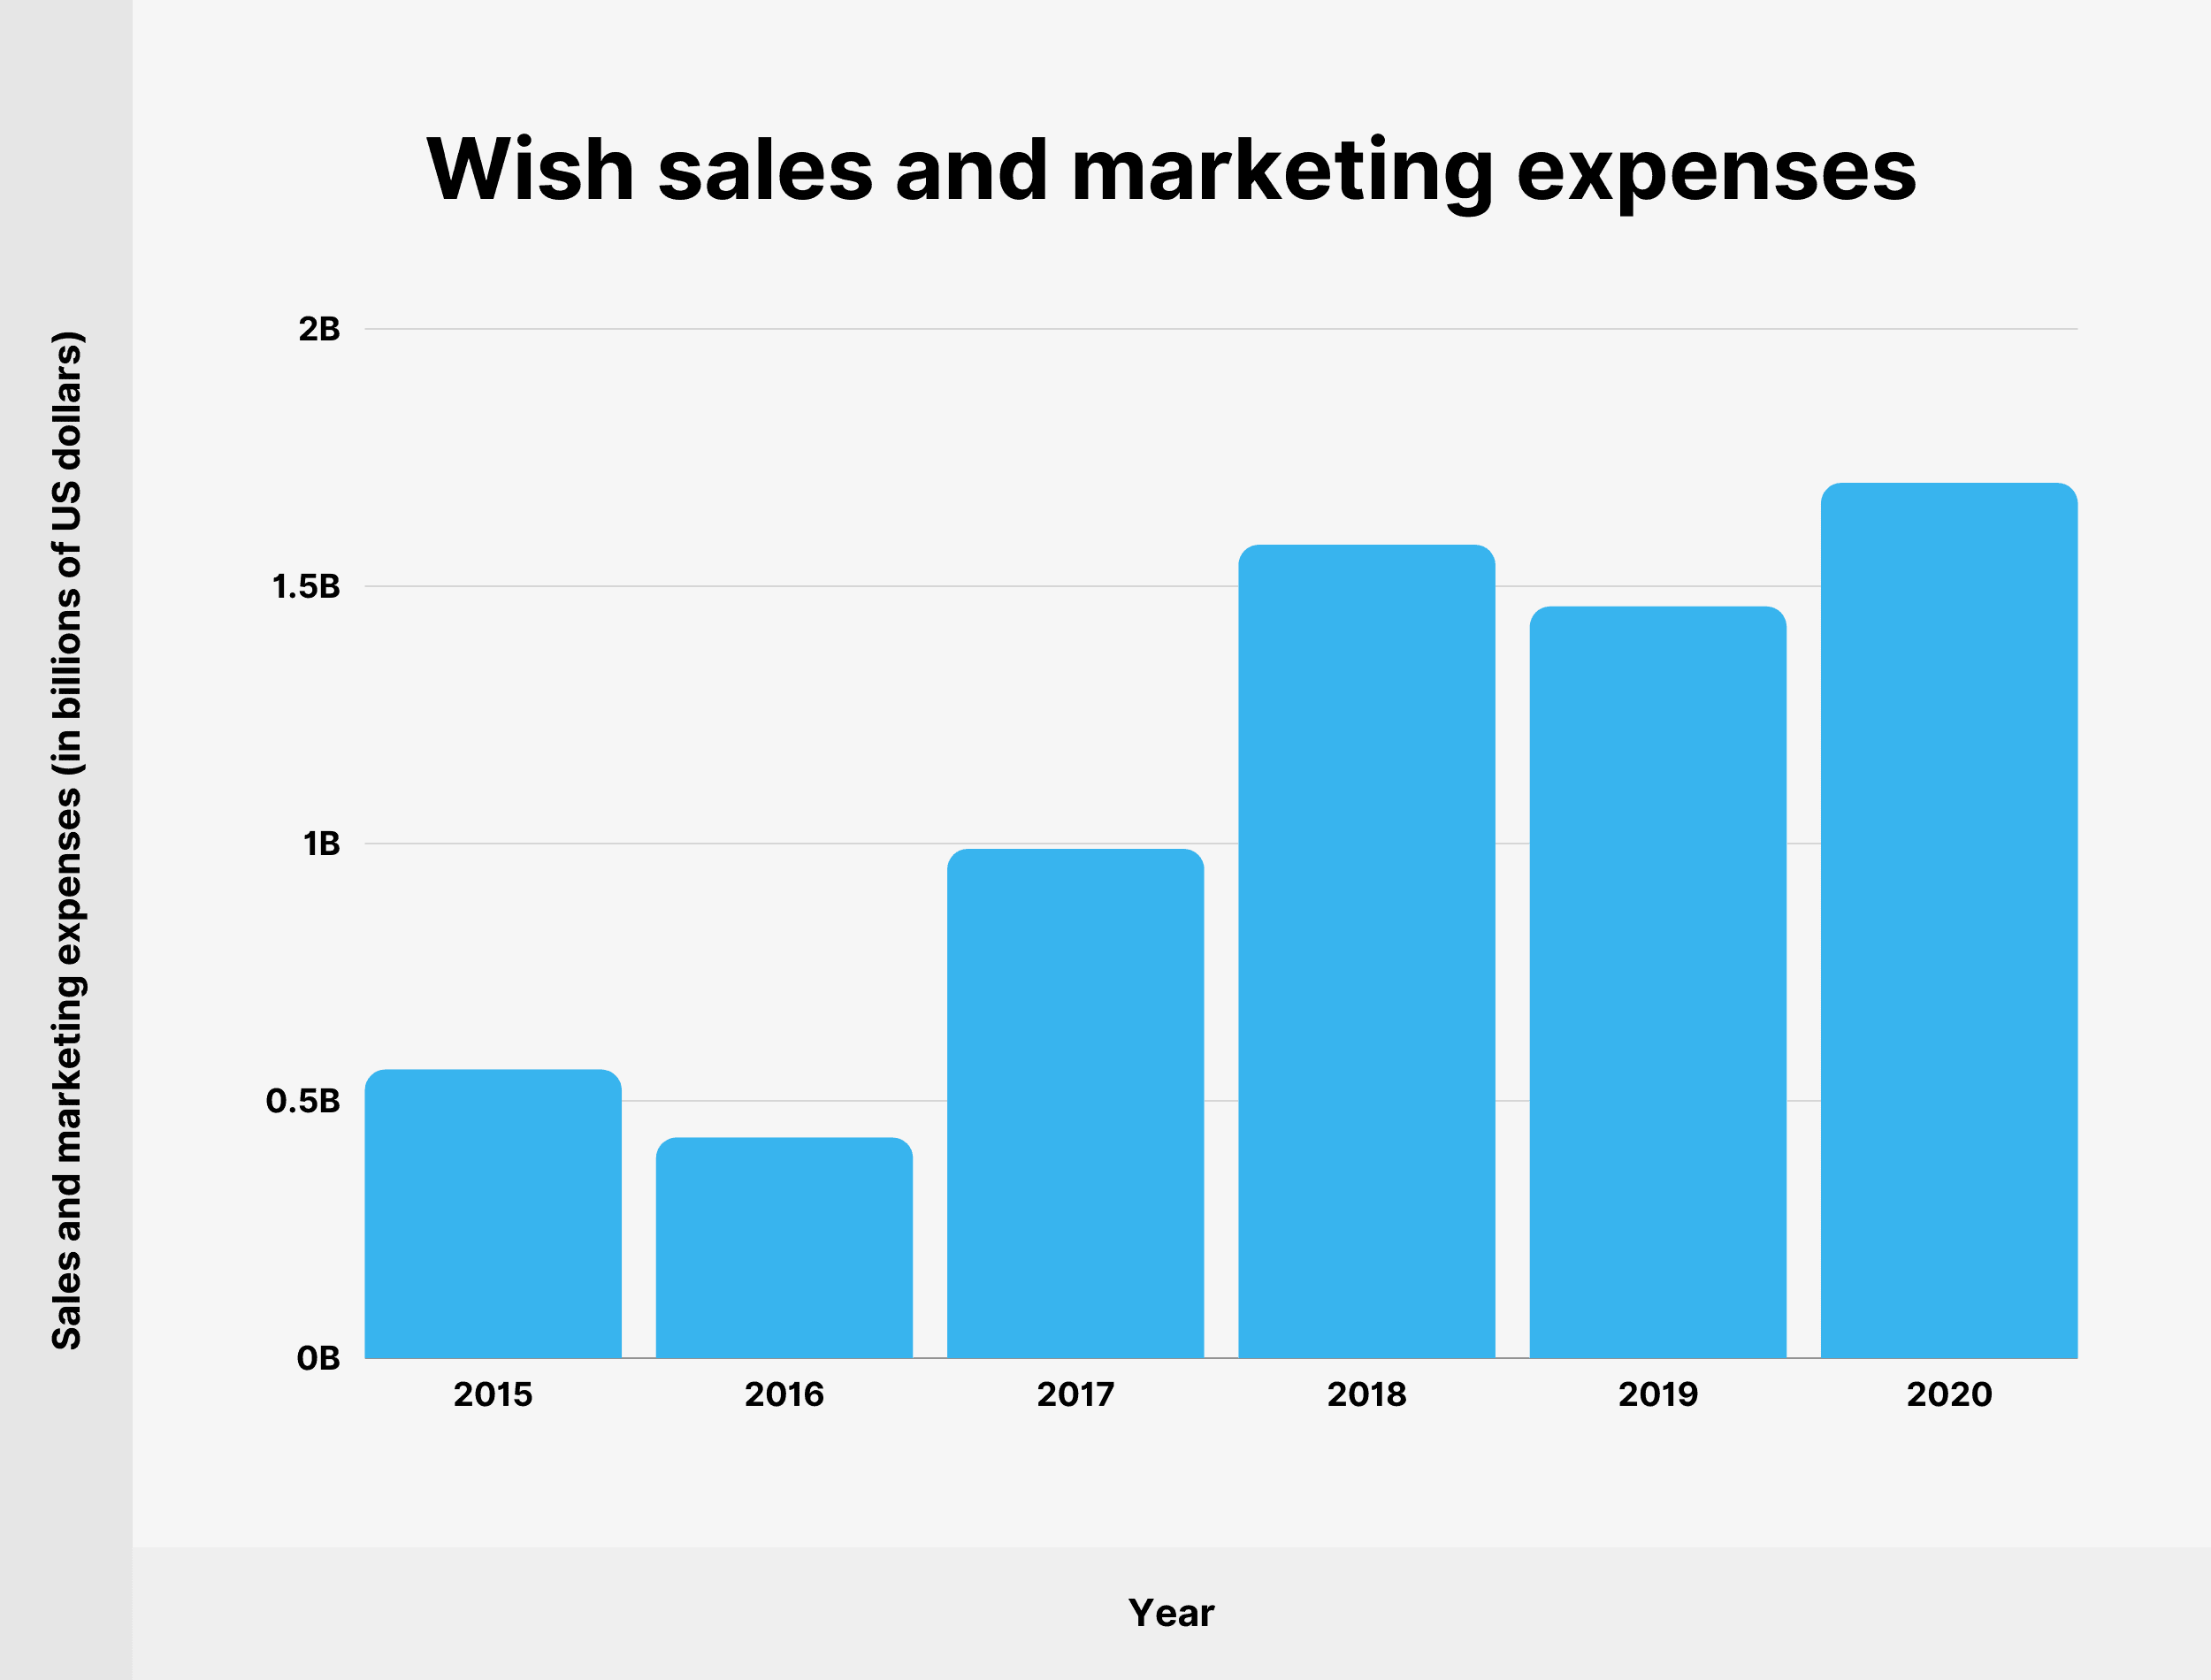 Wish sales and marketing expenses